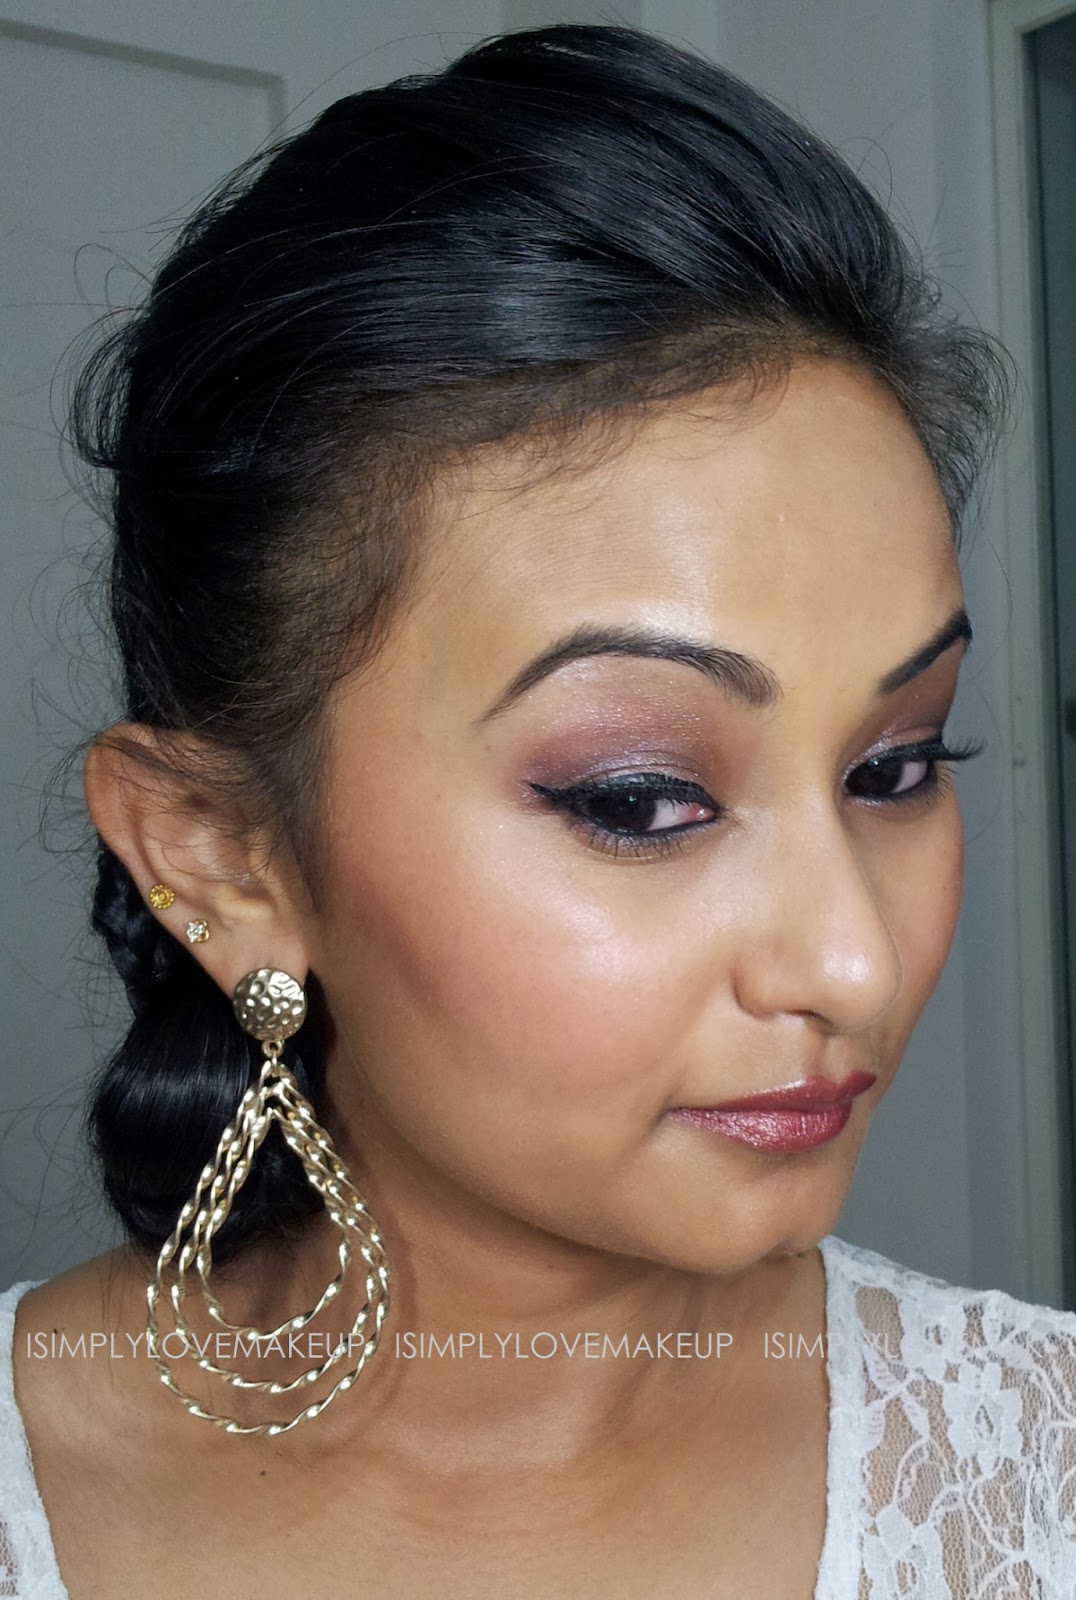 Bollywood Inspired Makeup Series (1950s): L'Or Sunset ...  Bollywood Inspi...